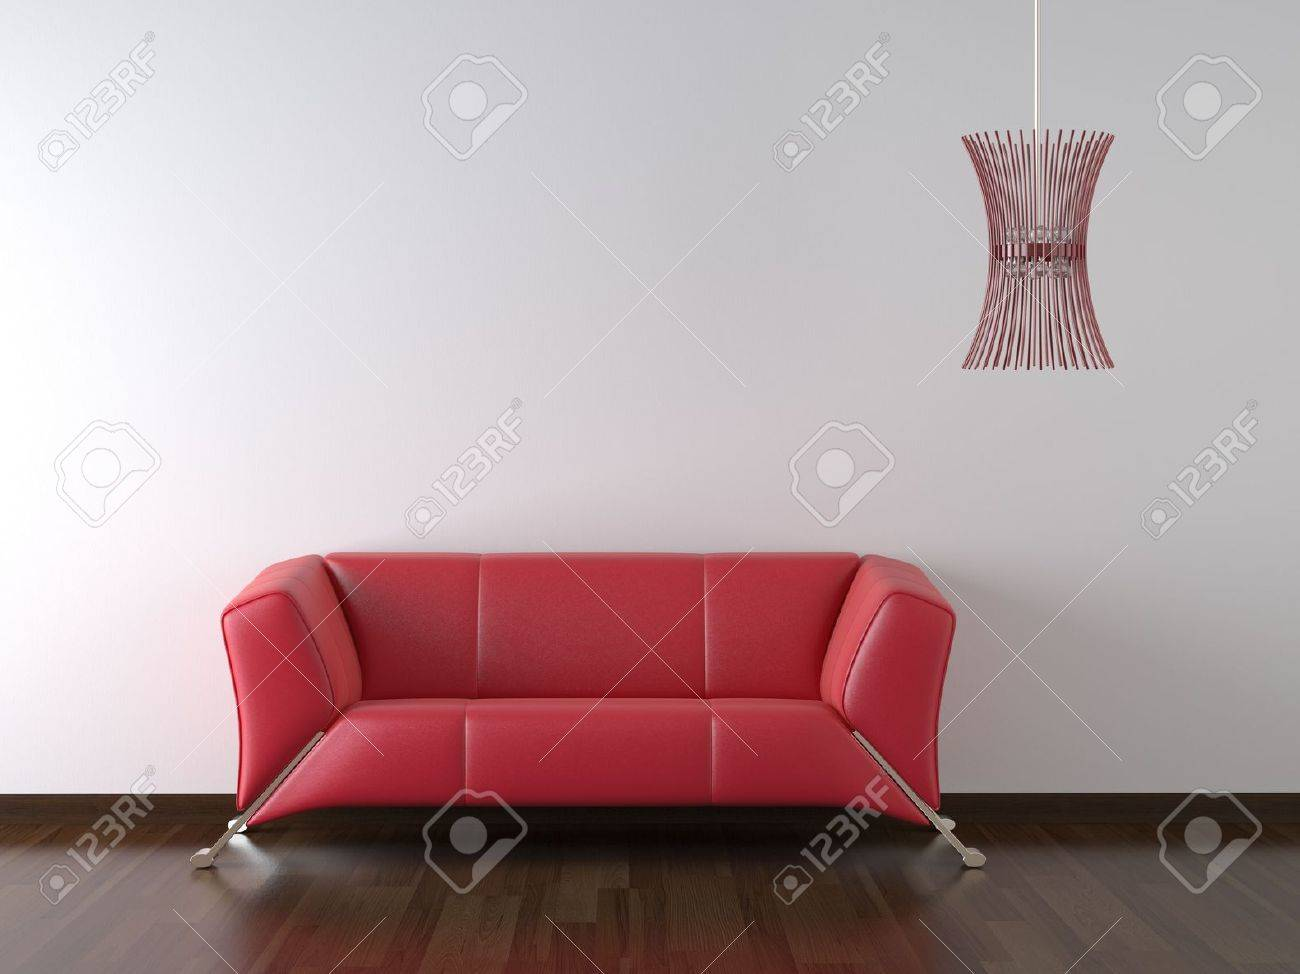 interior design red leather couch and lamp on white wall with copy space Stock Photo - 4902721